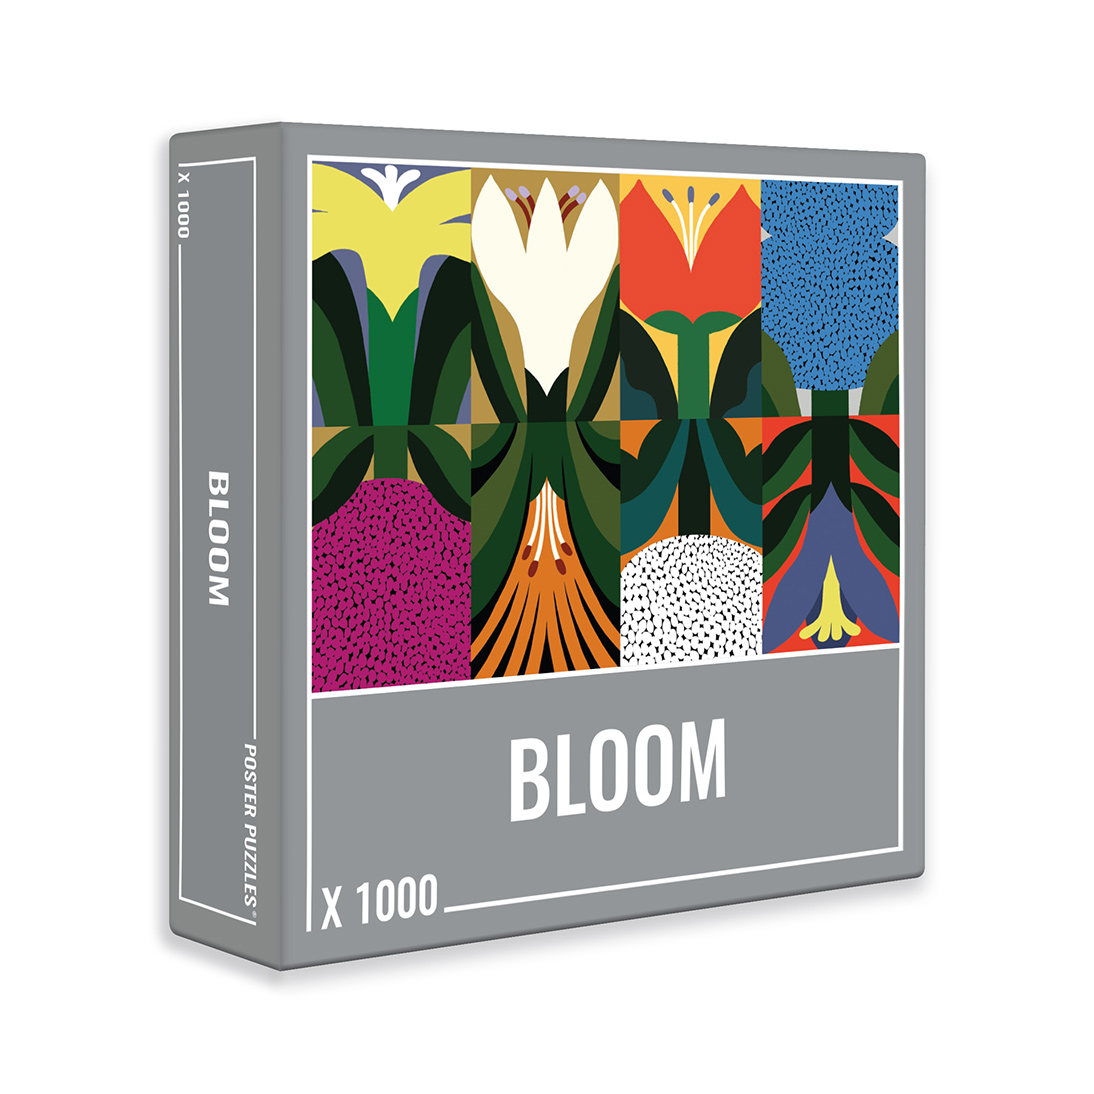 Bloom is a fun floral puzzle for grown ups!